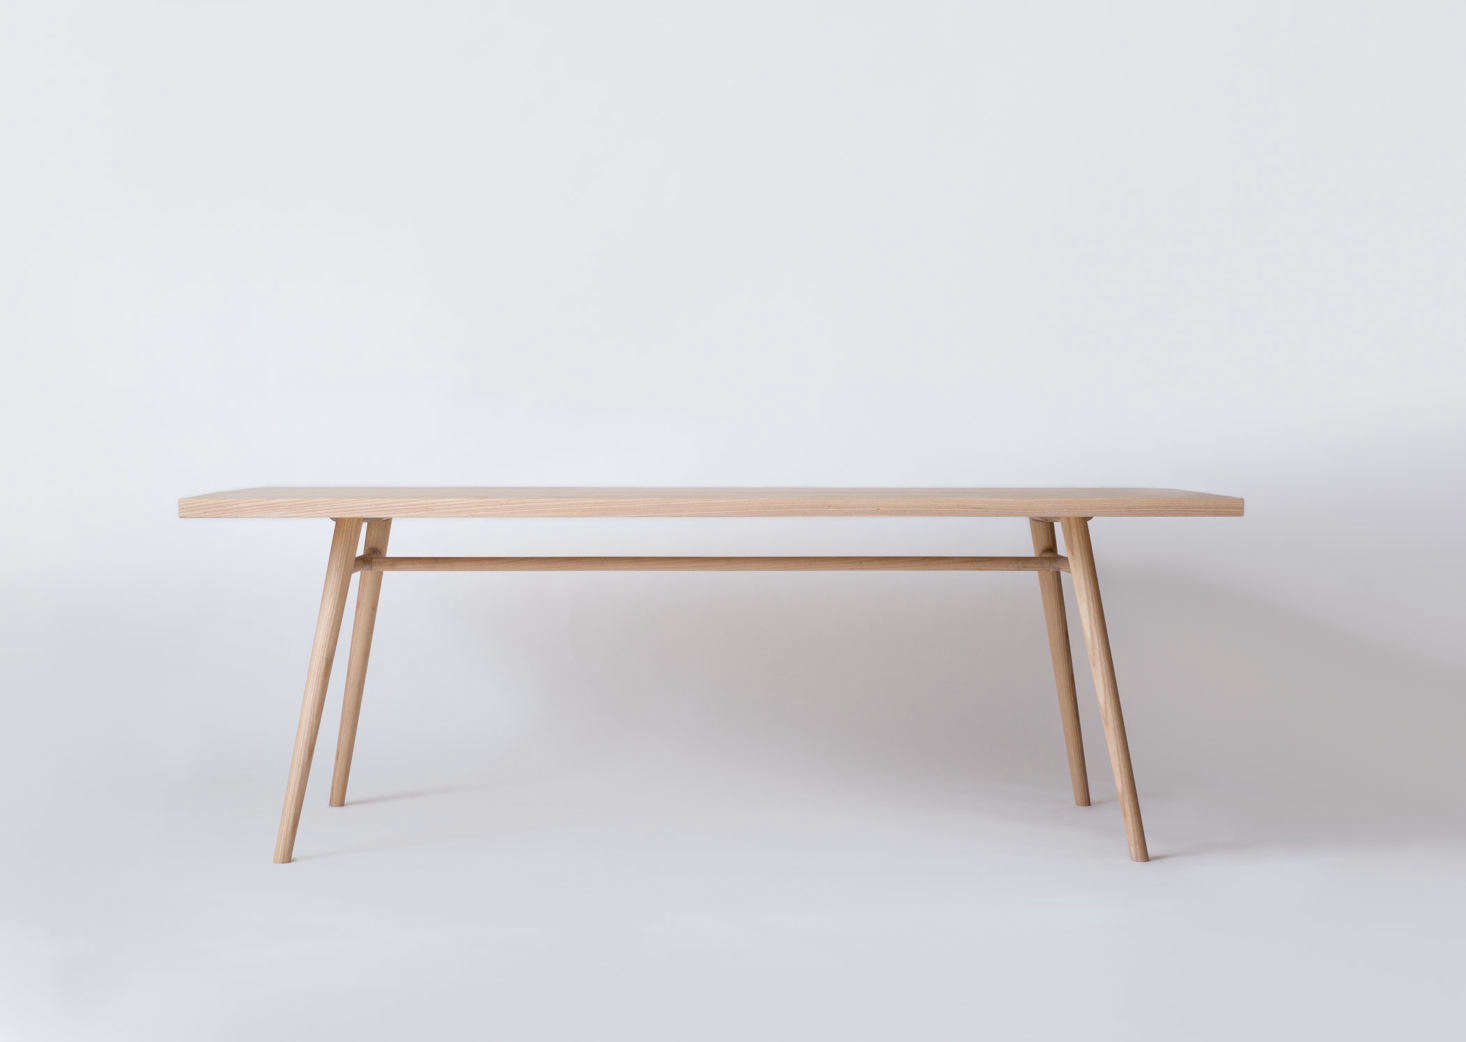 The anchor of the collection, the Bough Table, expresses a simplicity found both in Shaker and Sashimono furniture, two craftsmanship styles that inspire Simmering and Pauewn&#8